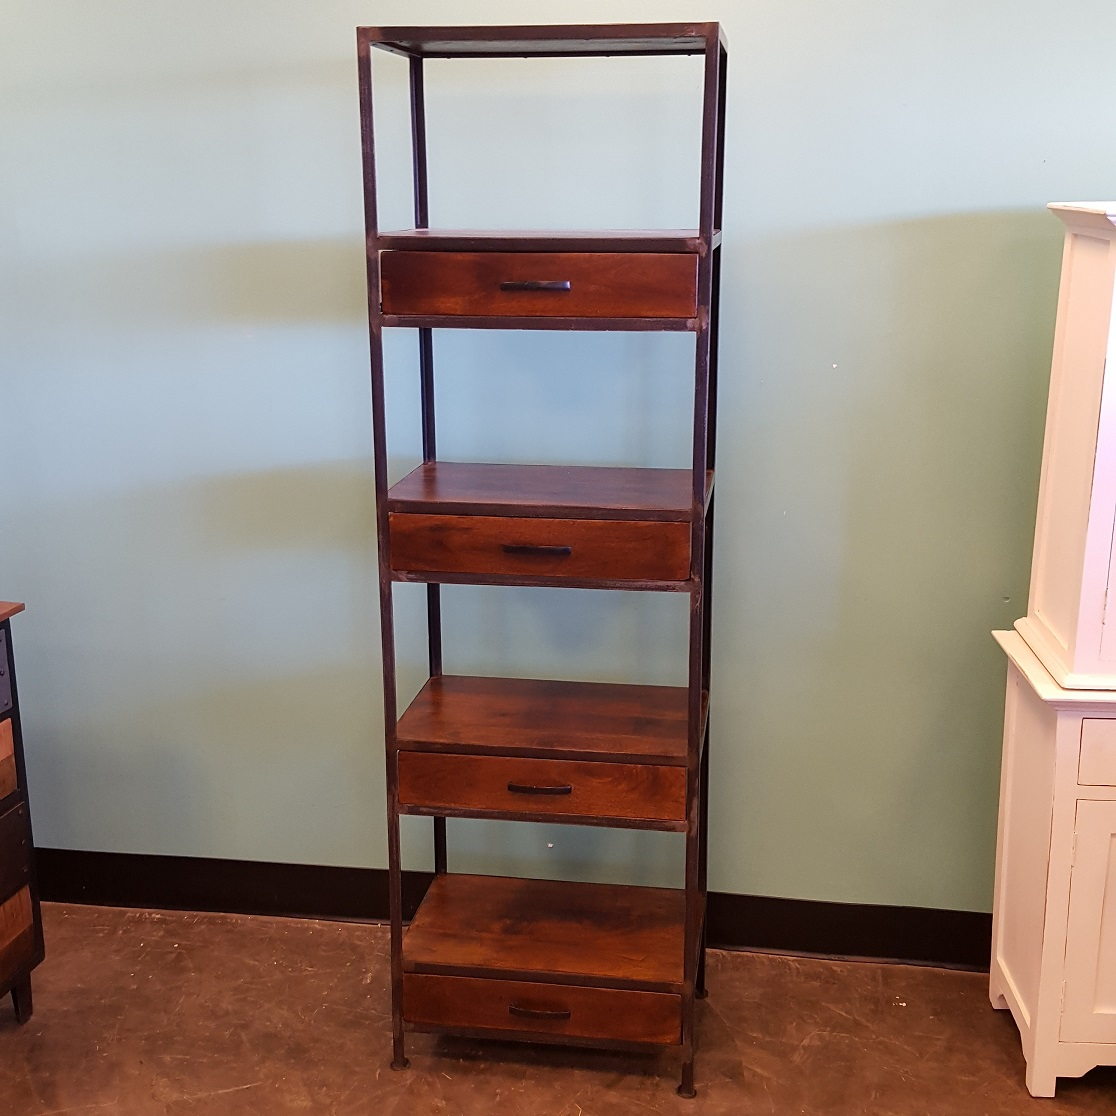 Very Impressive portraiture of Iron and Wood Bookcase with Four Drawers Nadeau Memphis with #733823 color and 1116x1116 pixels